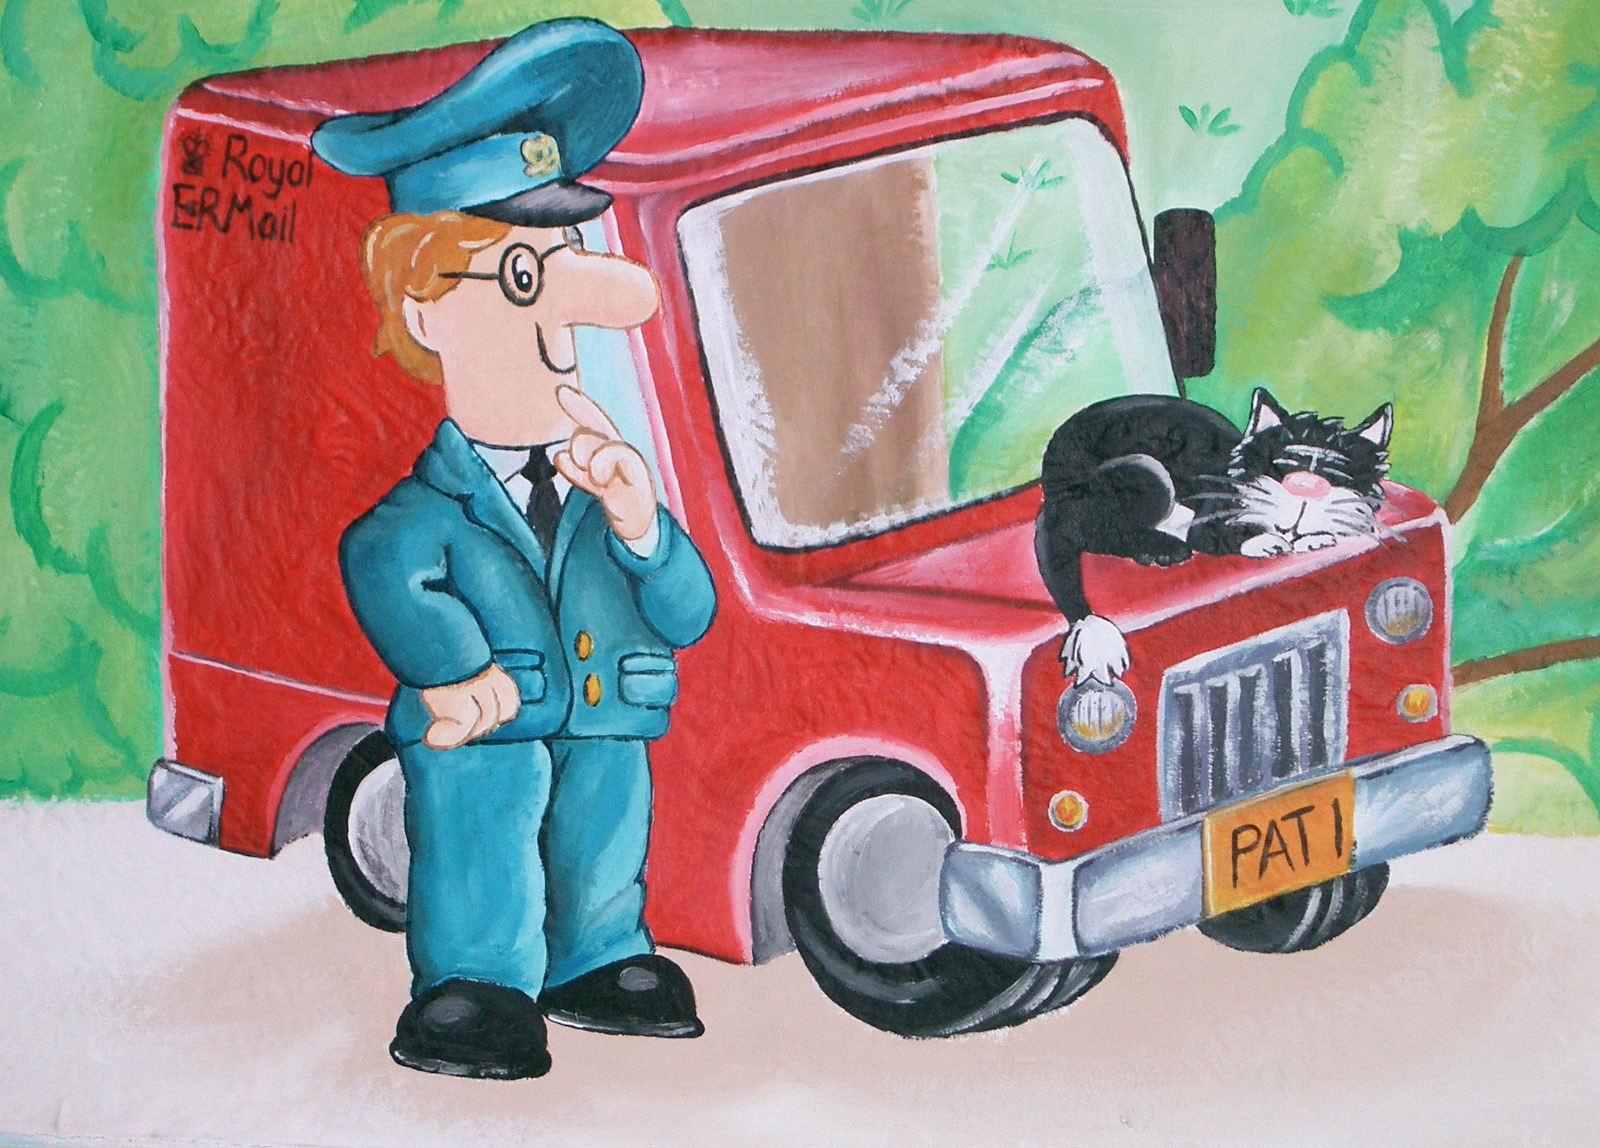 Post Man Pat